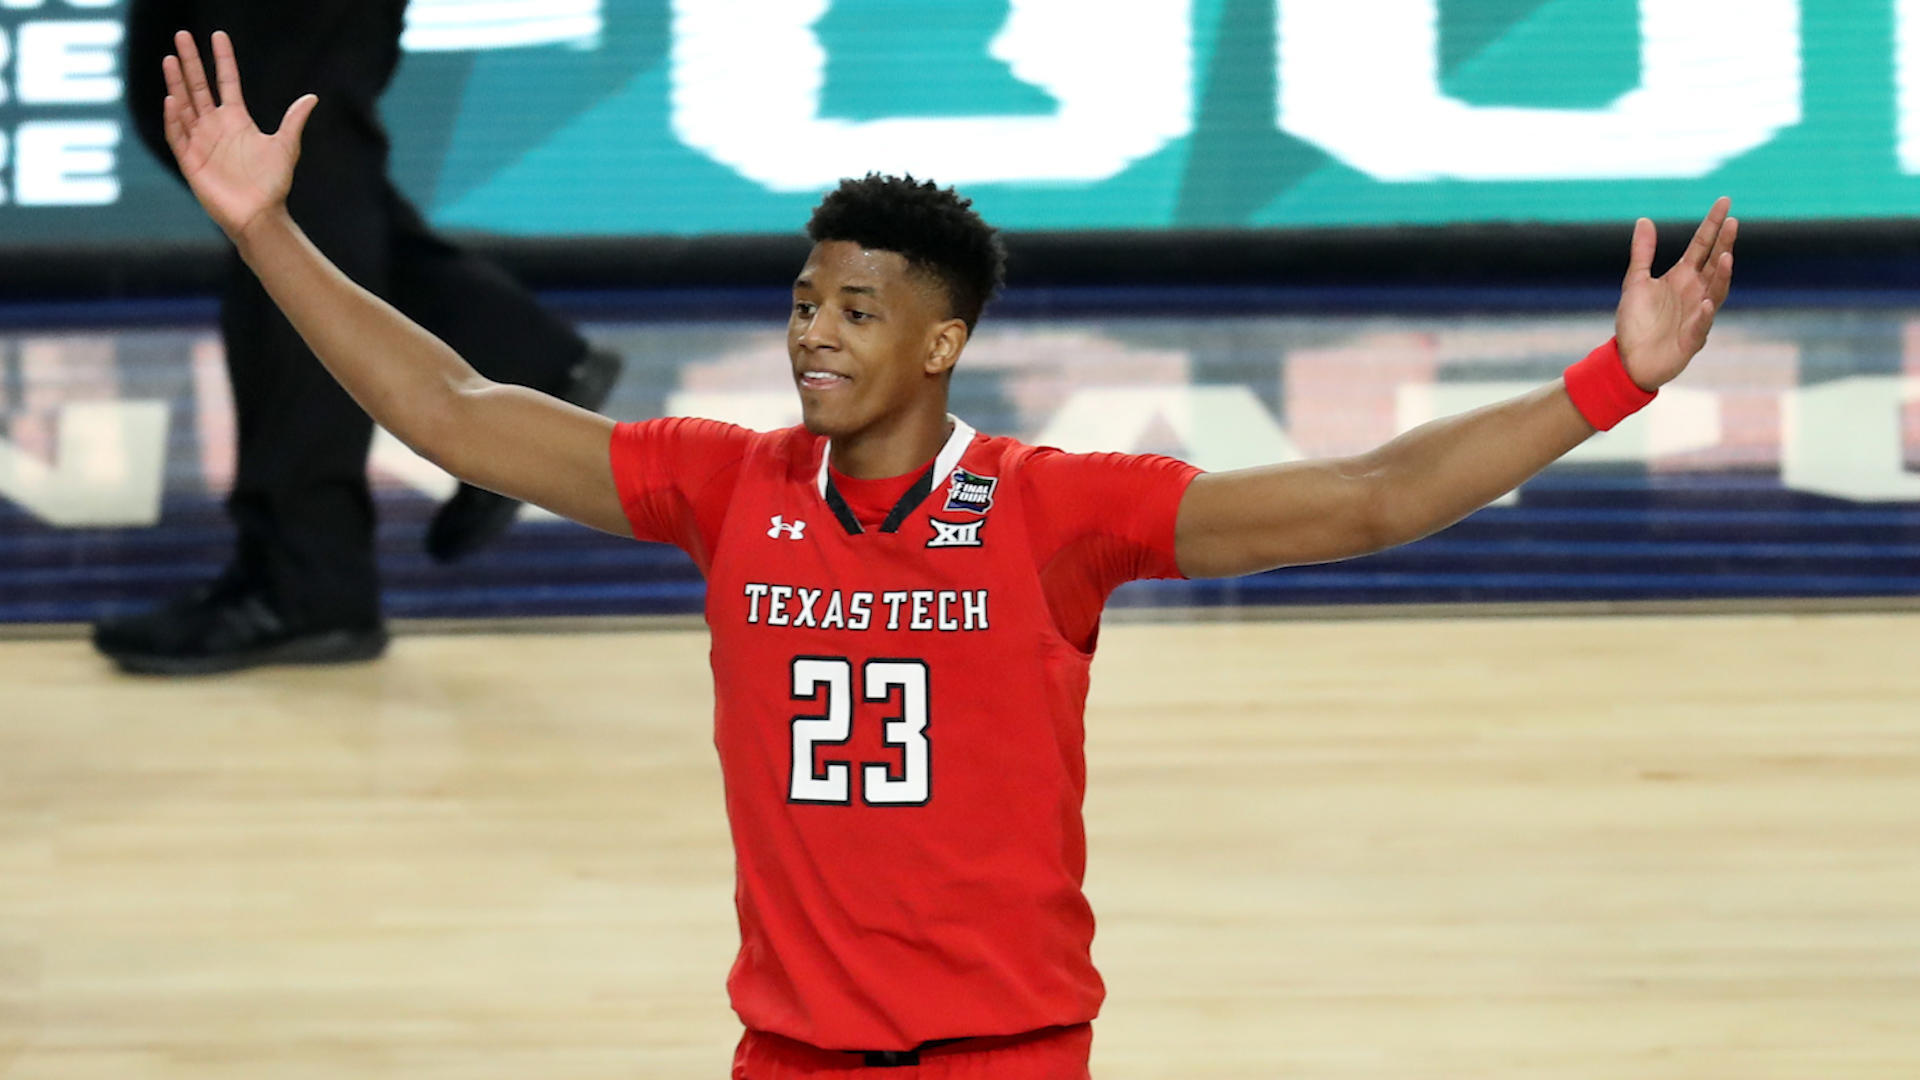 2019 NBA Draft: Texas Tech star Jarrett Culver, Big 12 Player of the Year, declares for draft